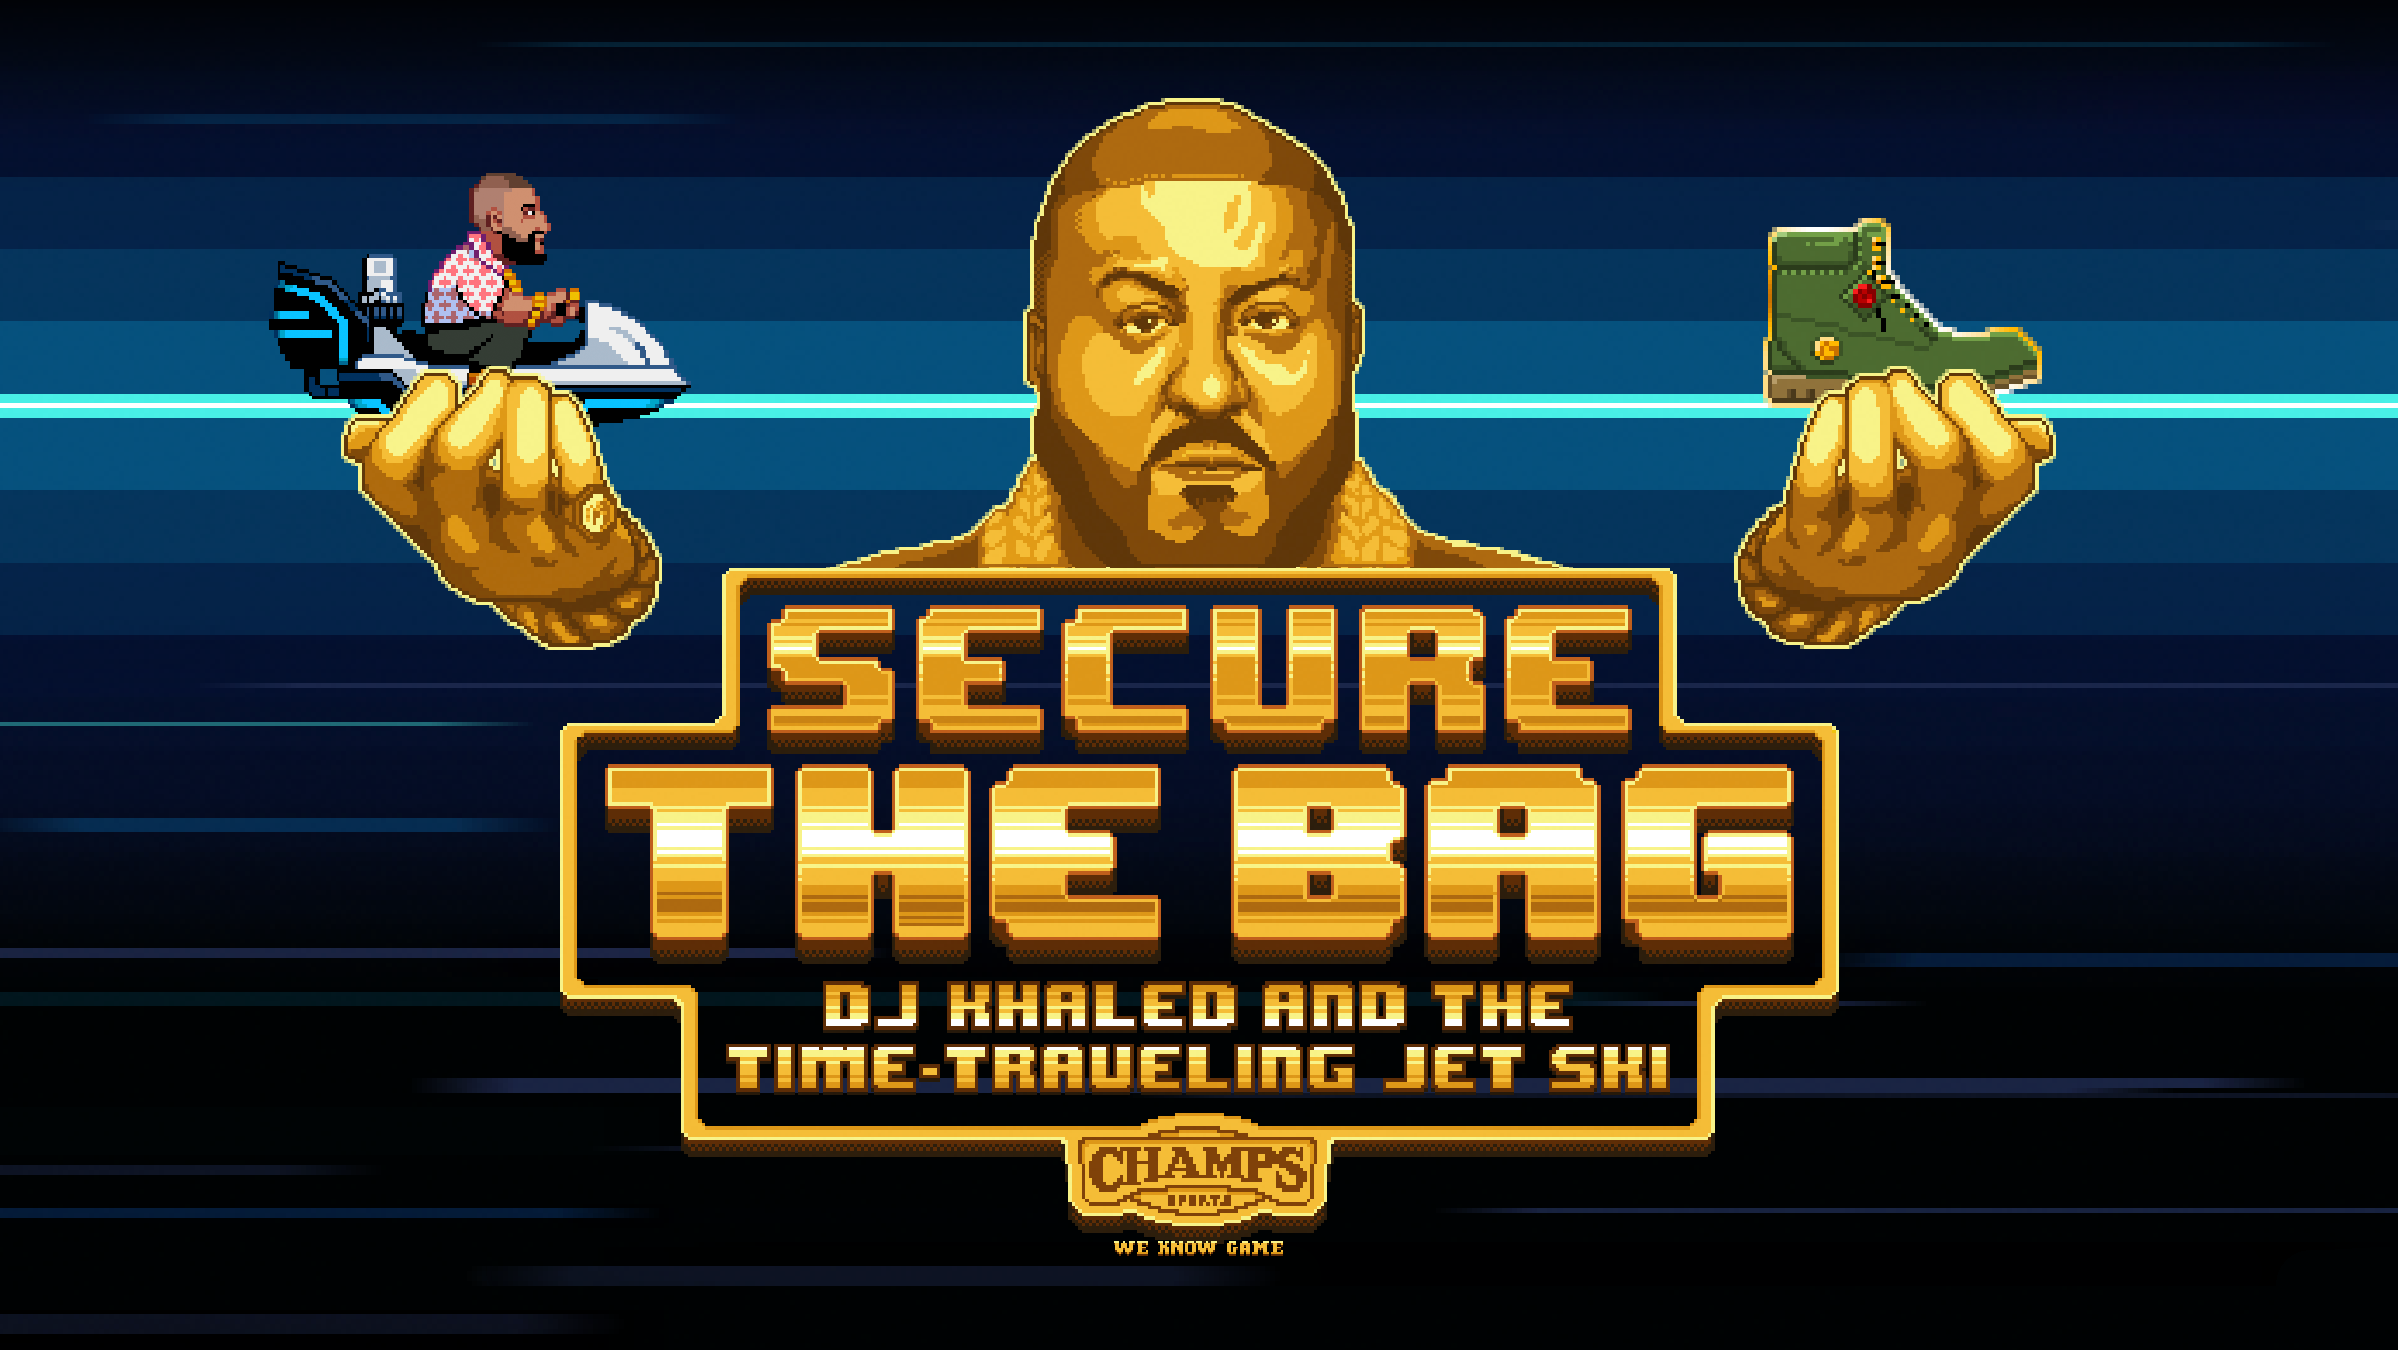 DJ Khaled s New Mobile Game for Champs Sports Leans Into 1980s Cool.  Sega-like graphics pitch Timberland boots b6d055562